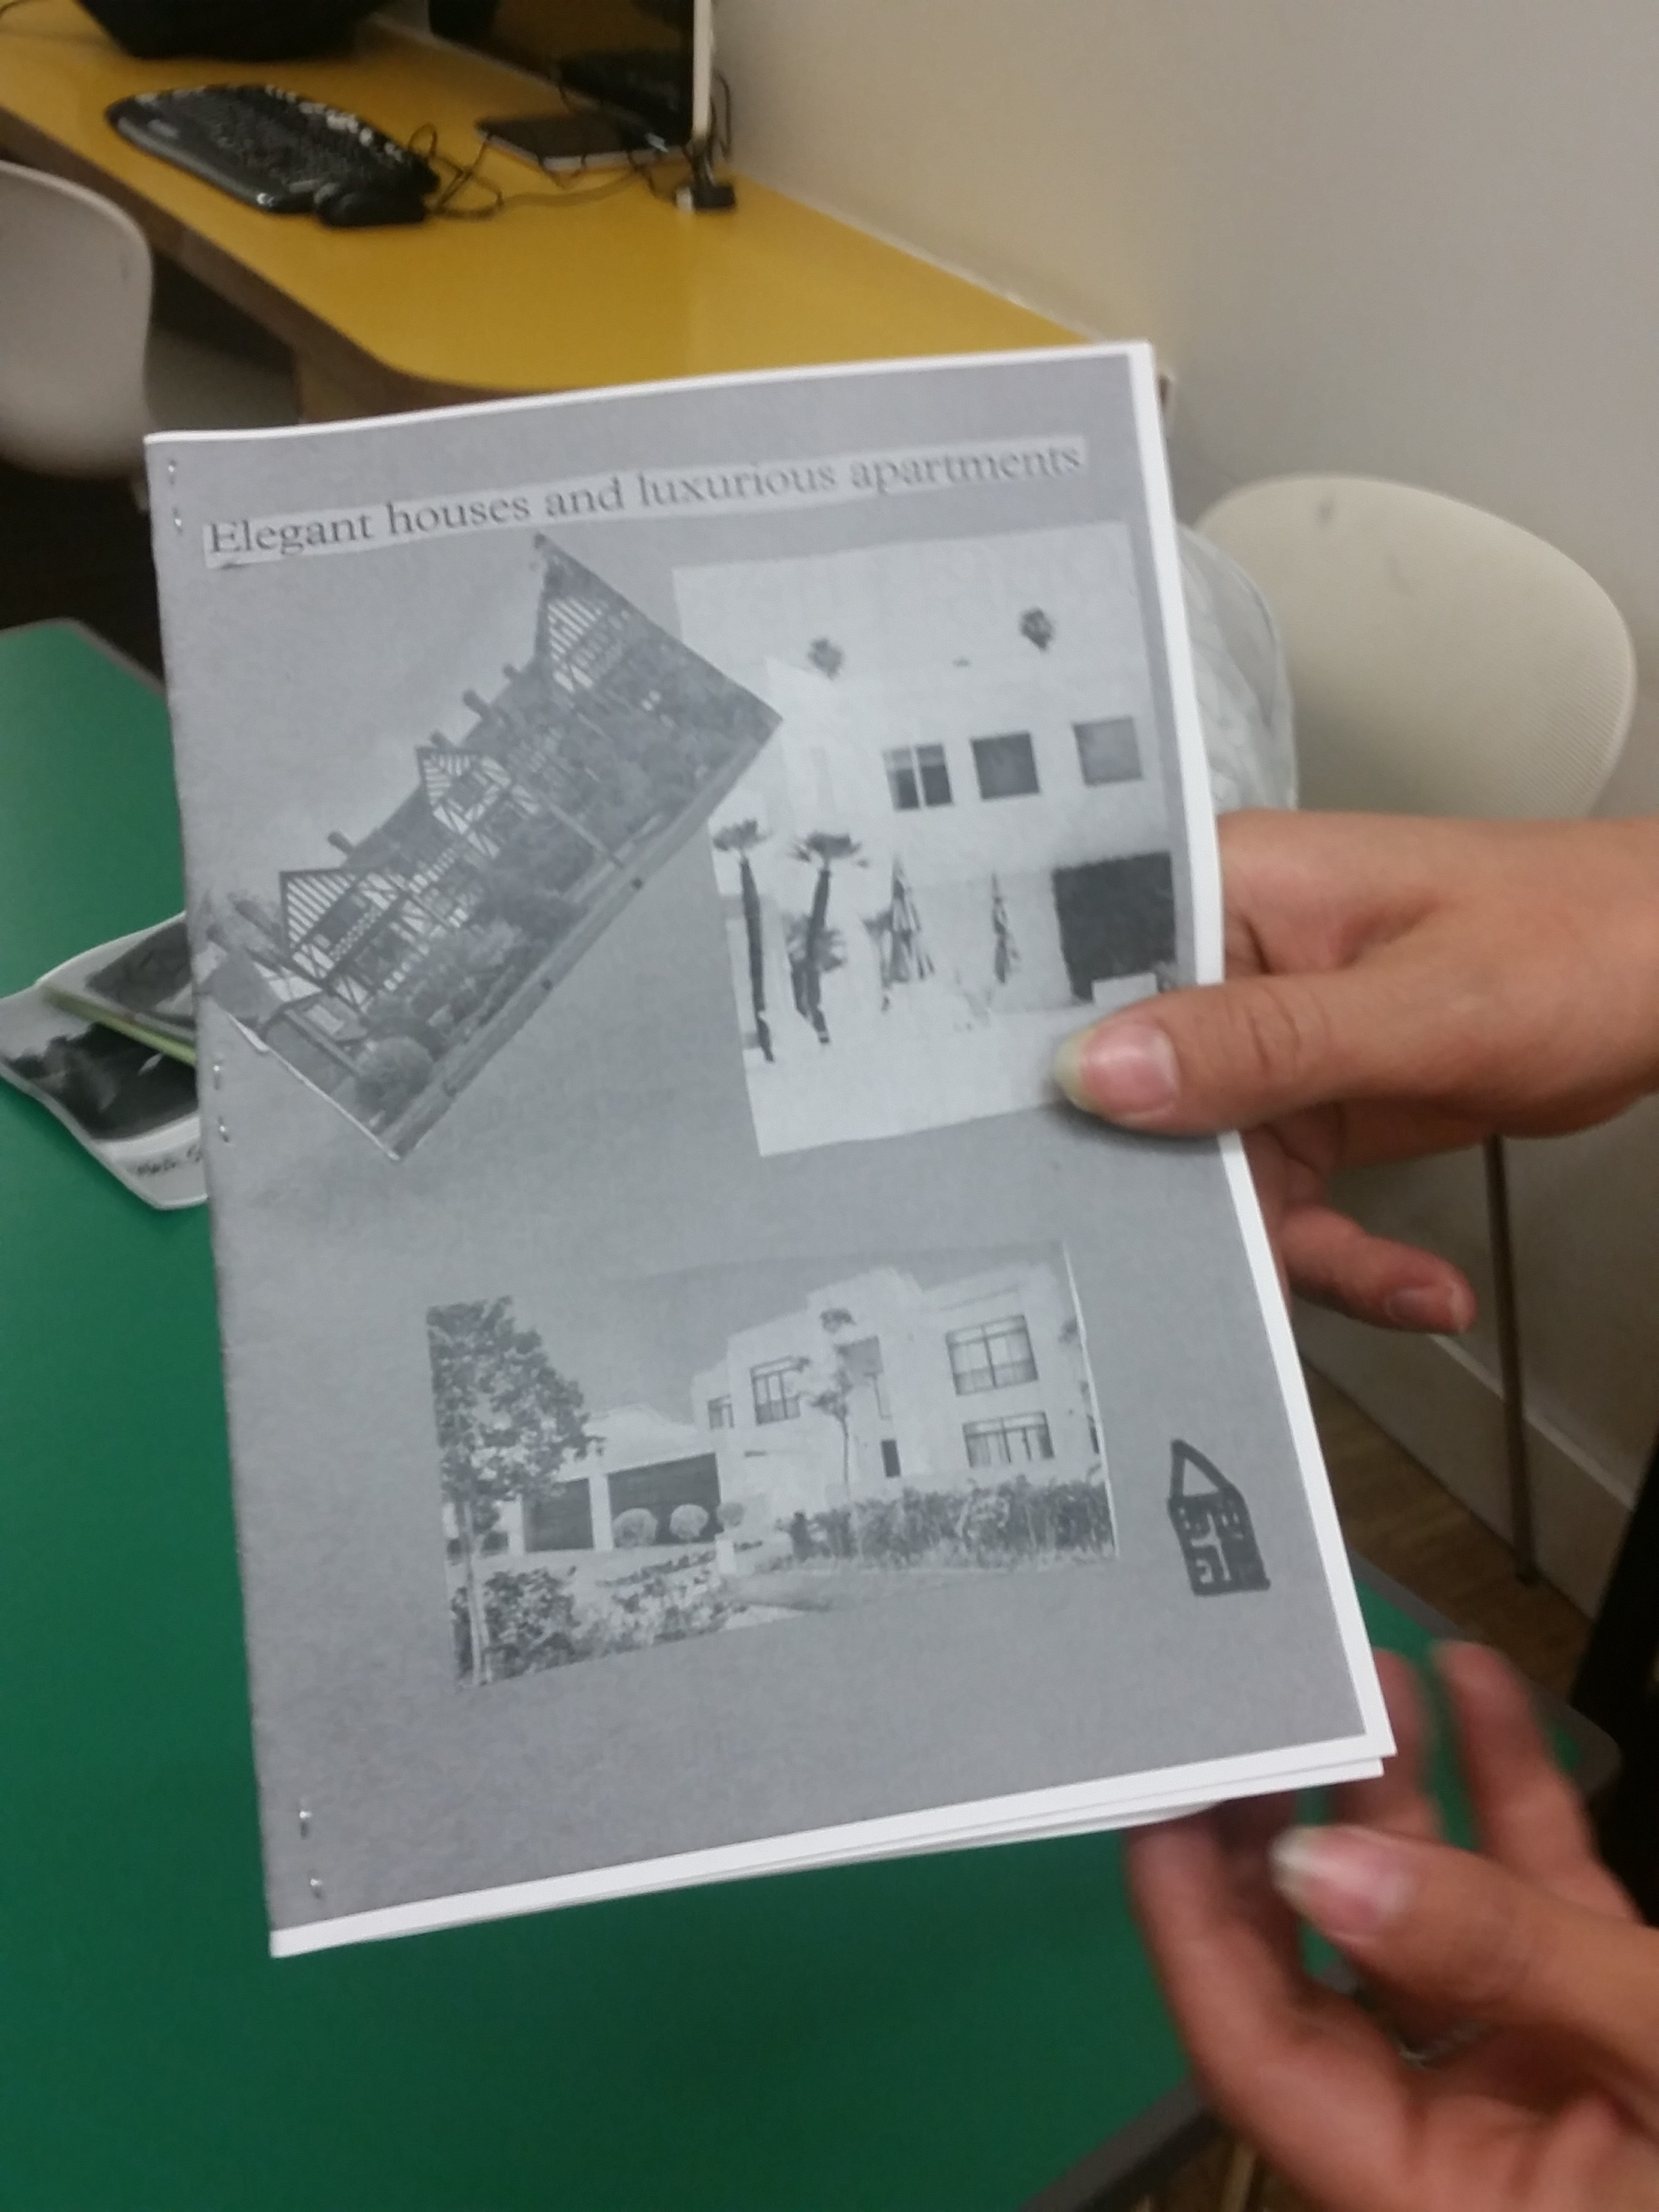 """""""Elegant Homes and Luxurious Apartments"""" - finished fanzine made during the #citylis workshop. Photo by Ernesto Priego"""